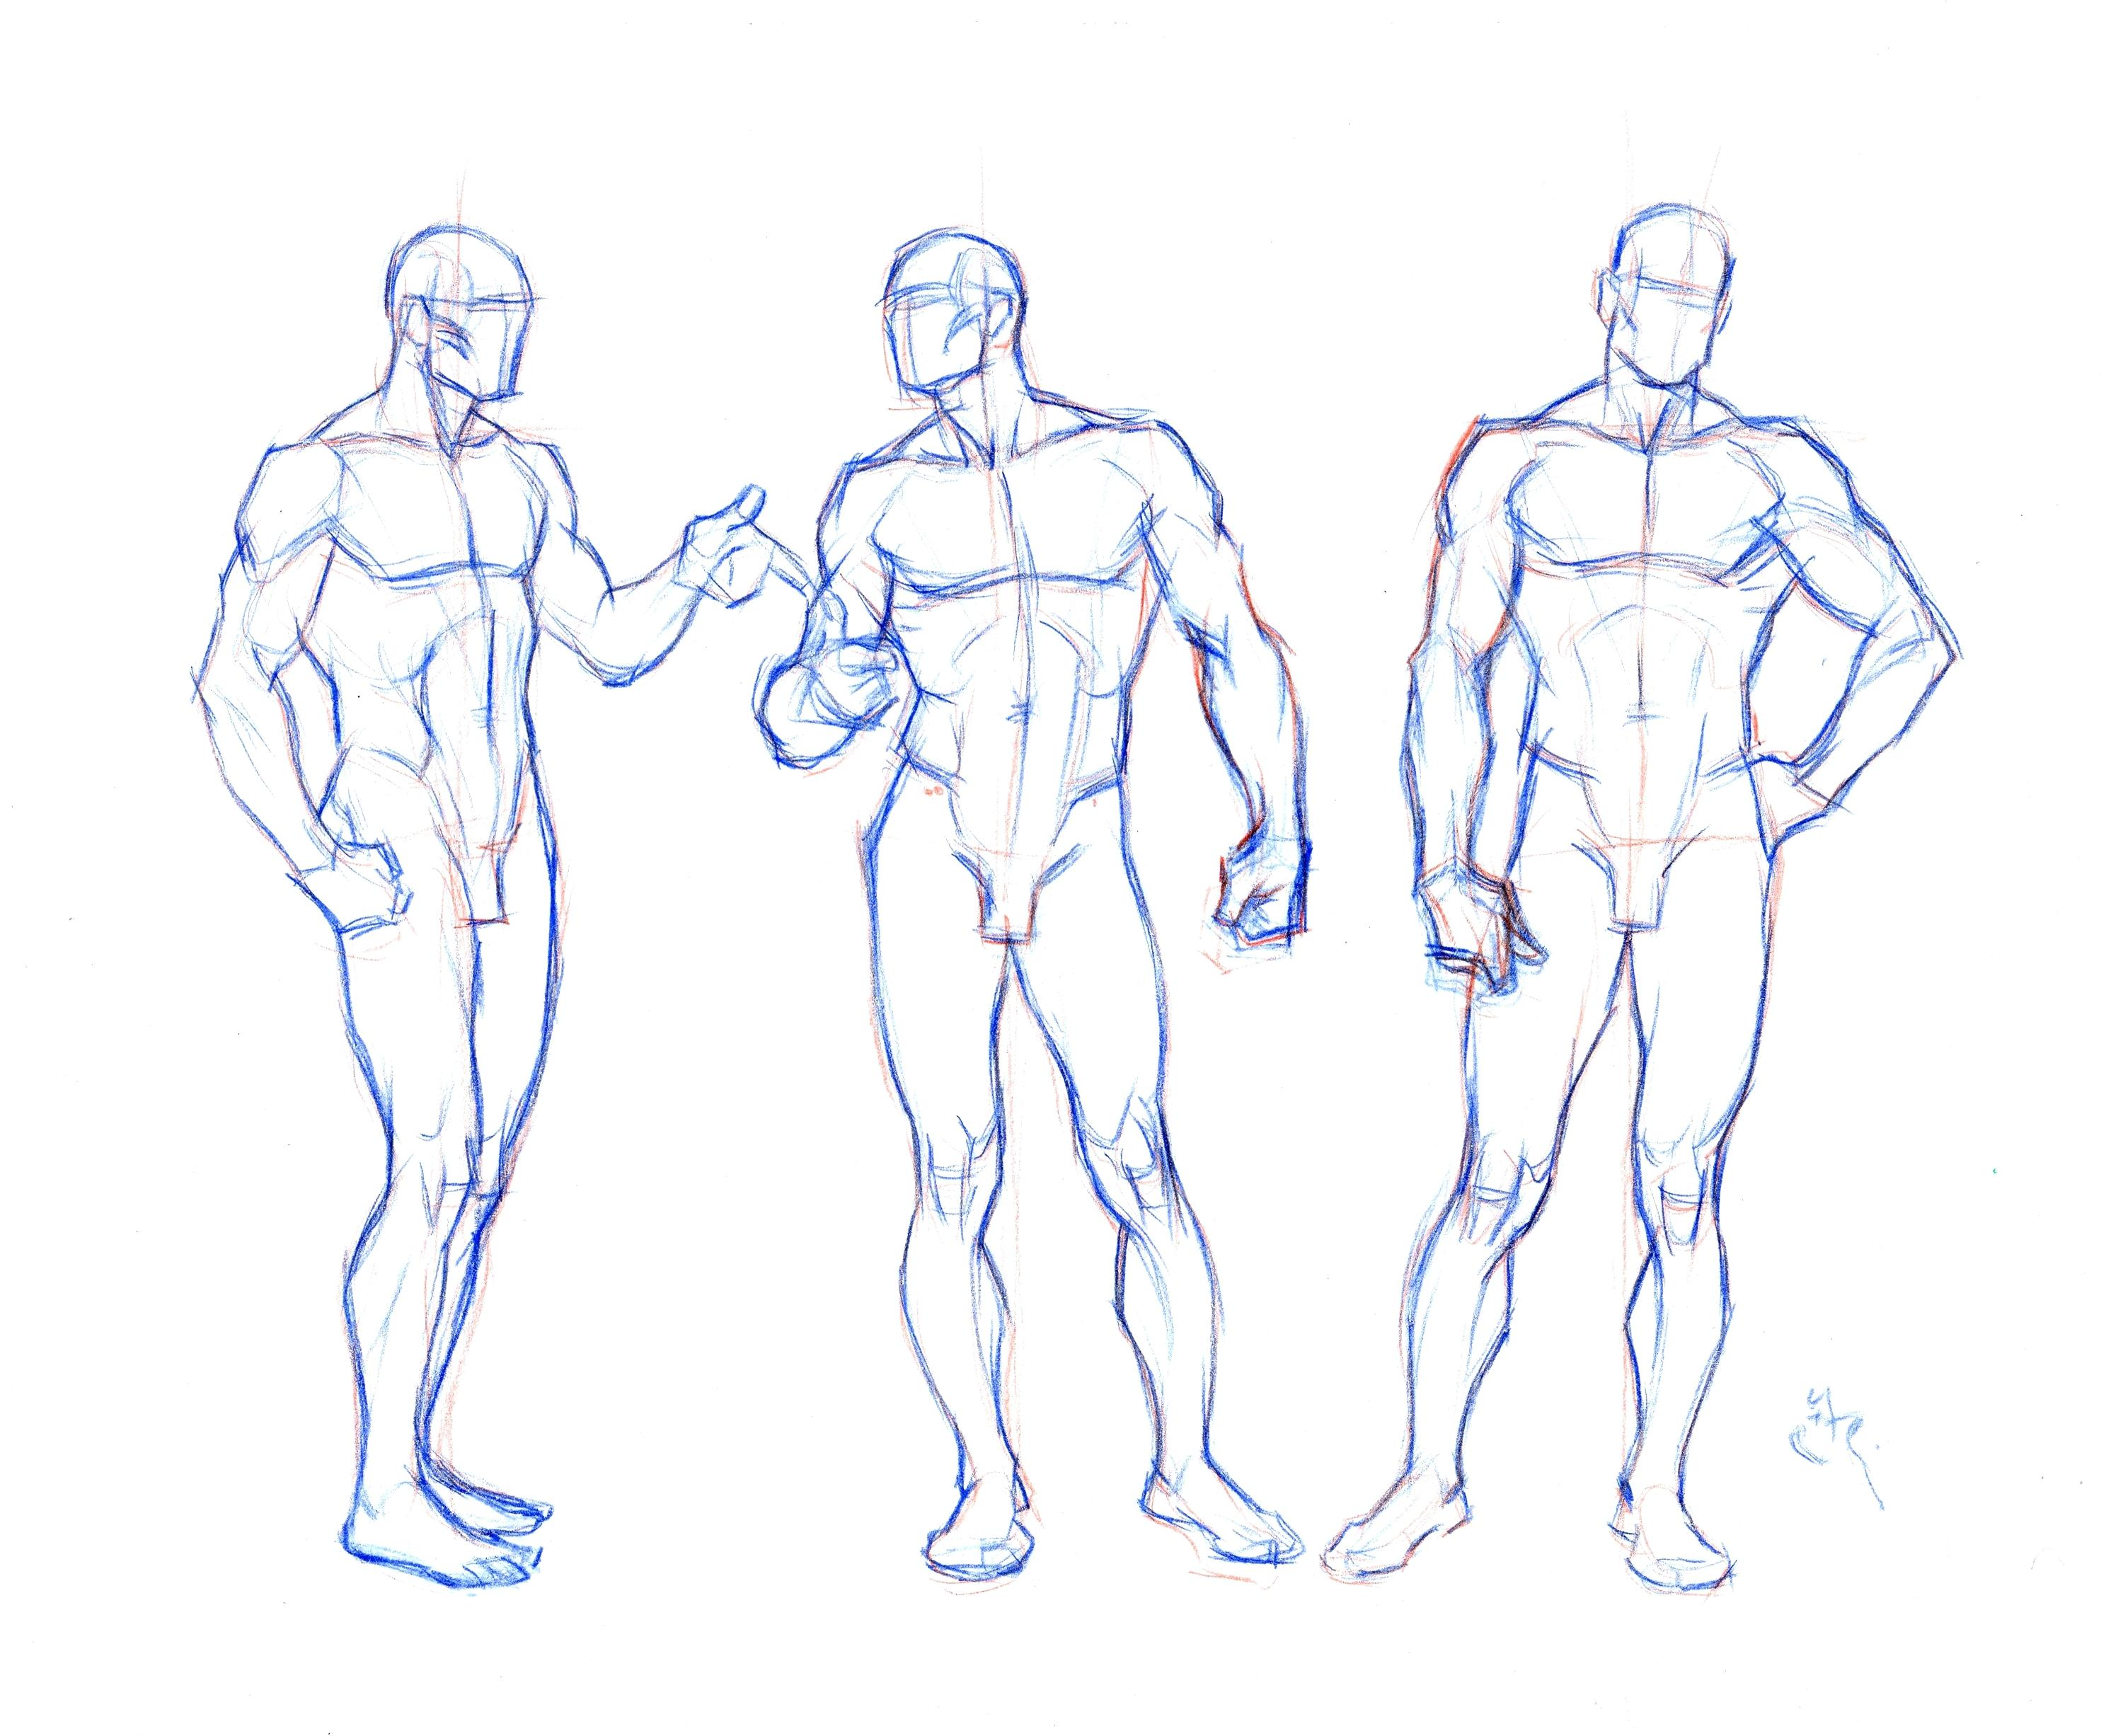 human body drawing template - Boat.jeremyeaton.co